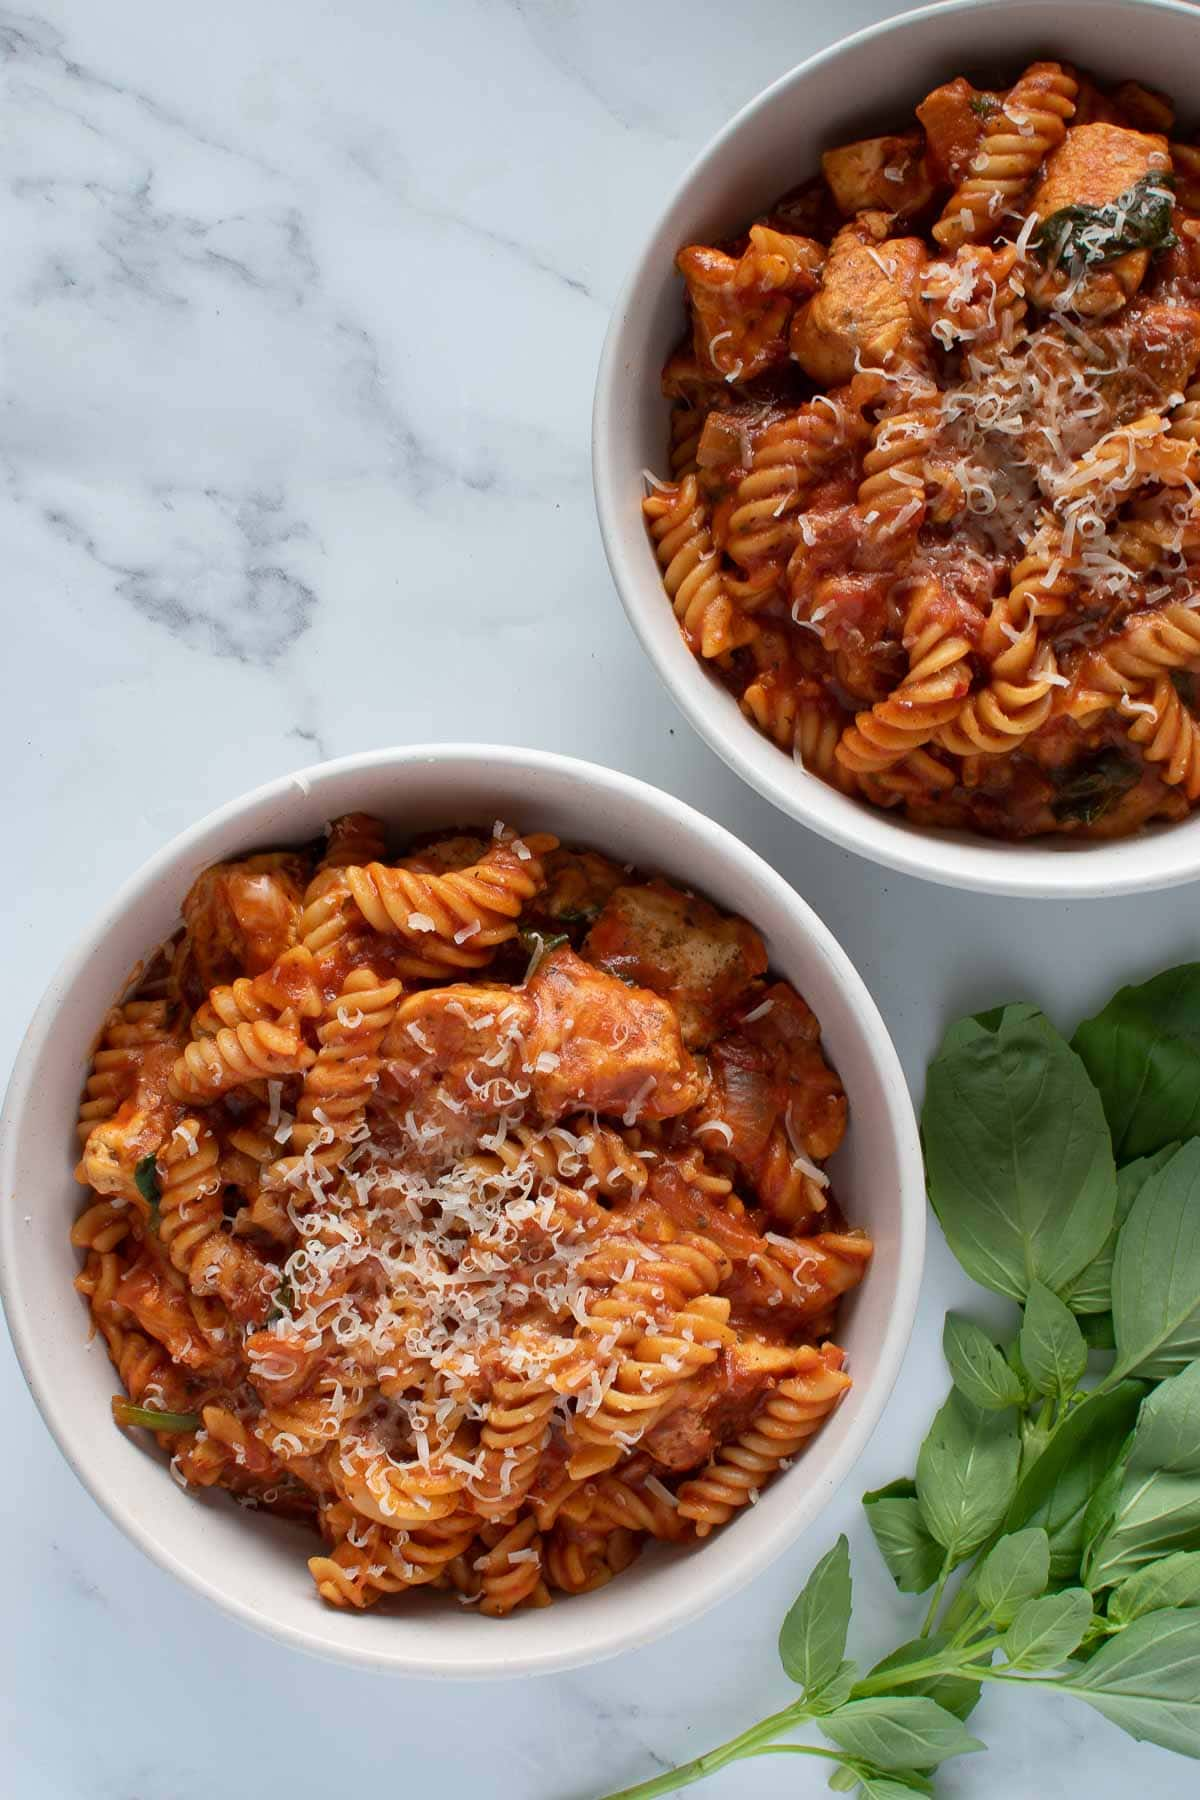 Two bowls of pasta with chicken.